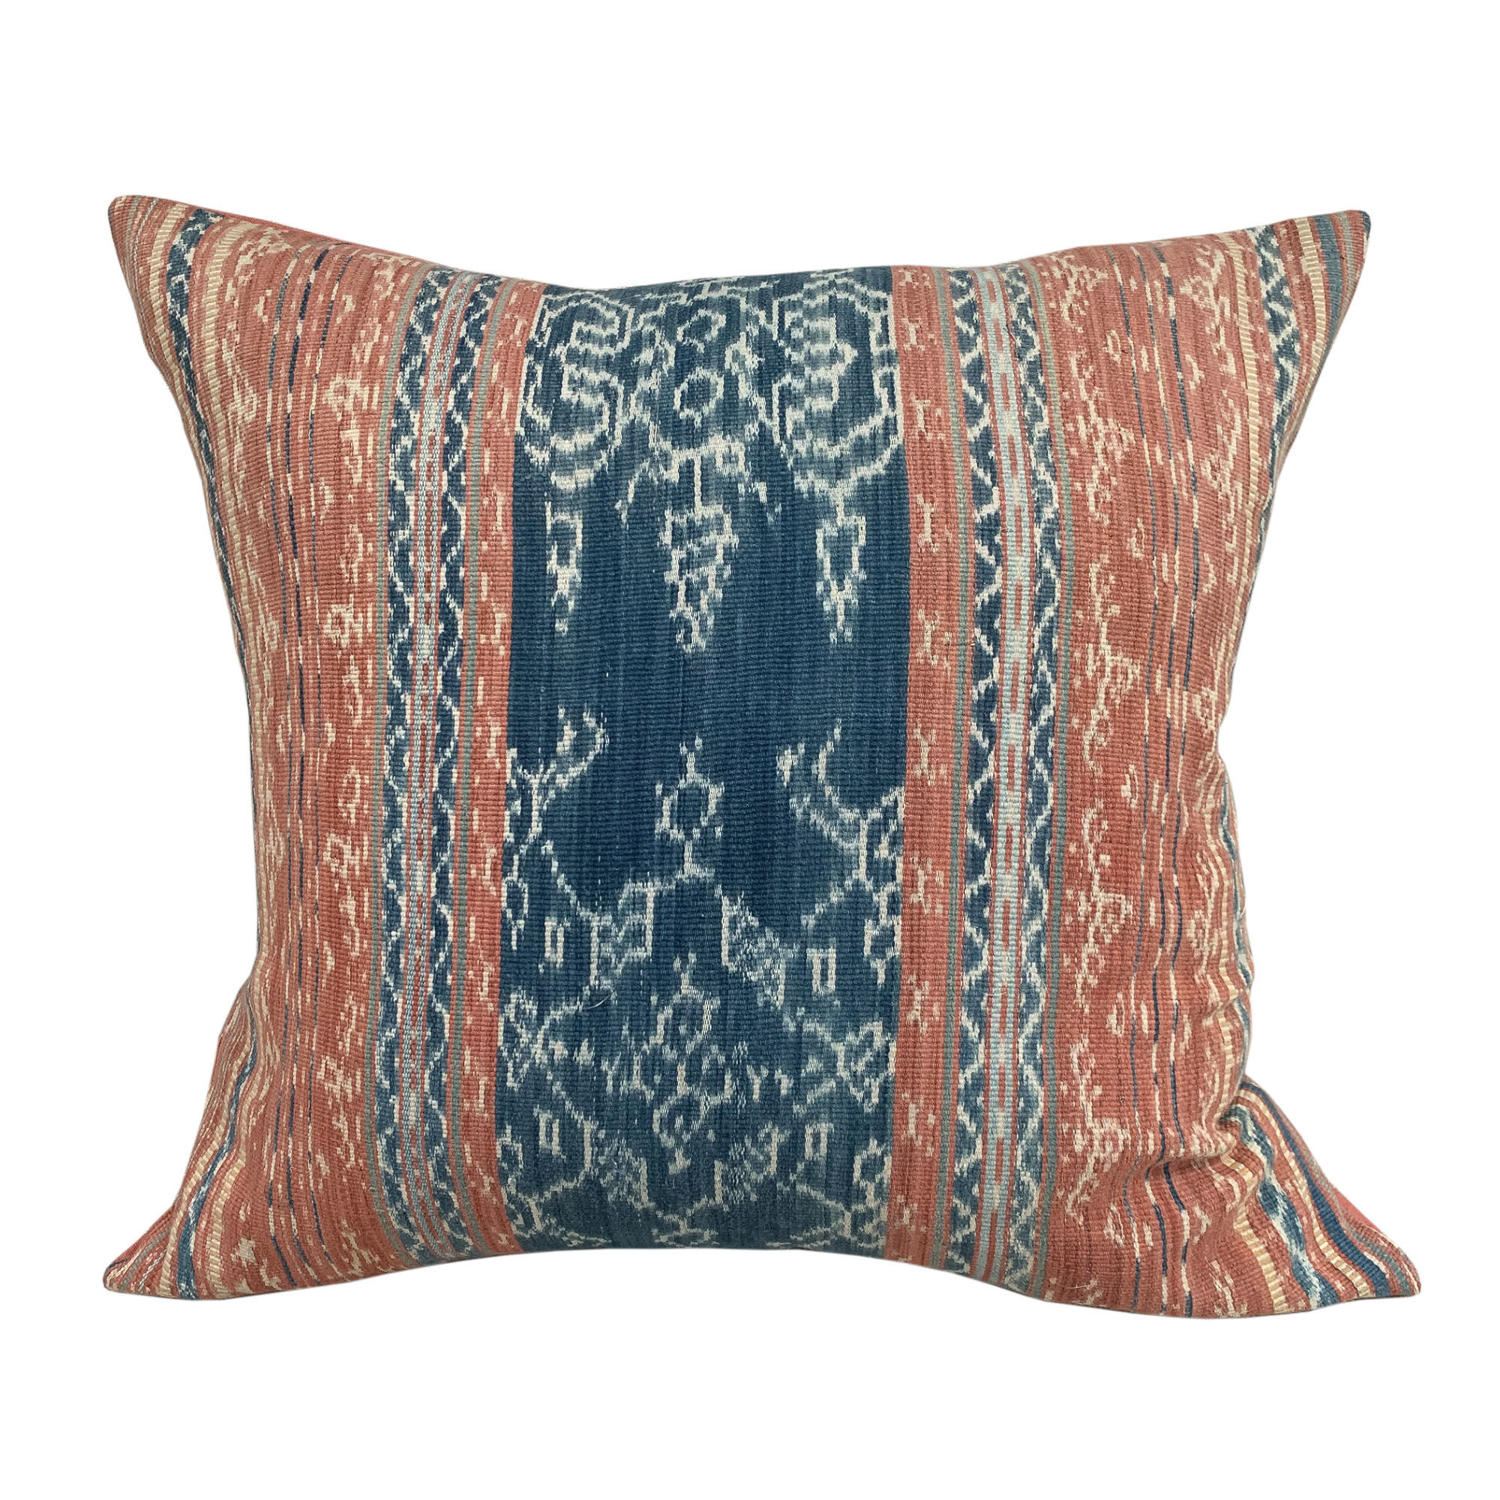 Flores ikat cushion coral and blue